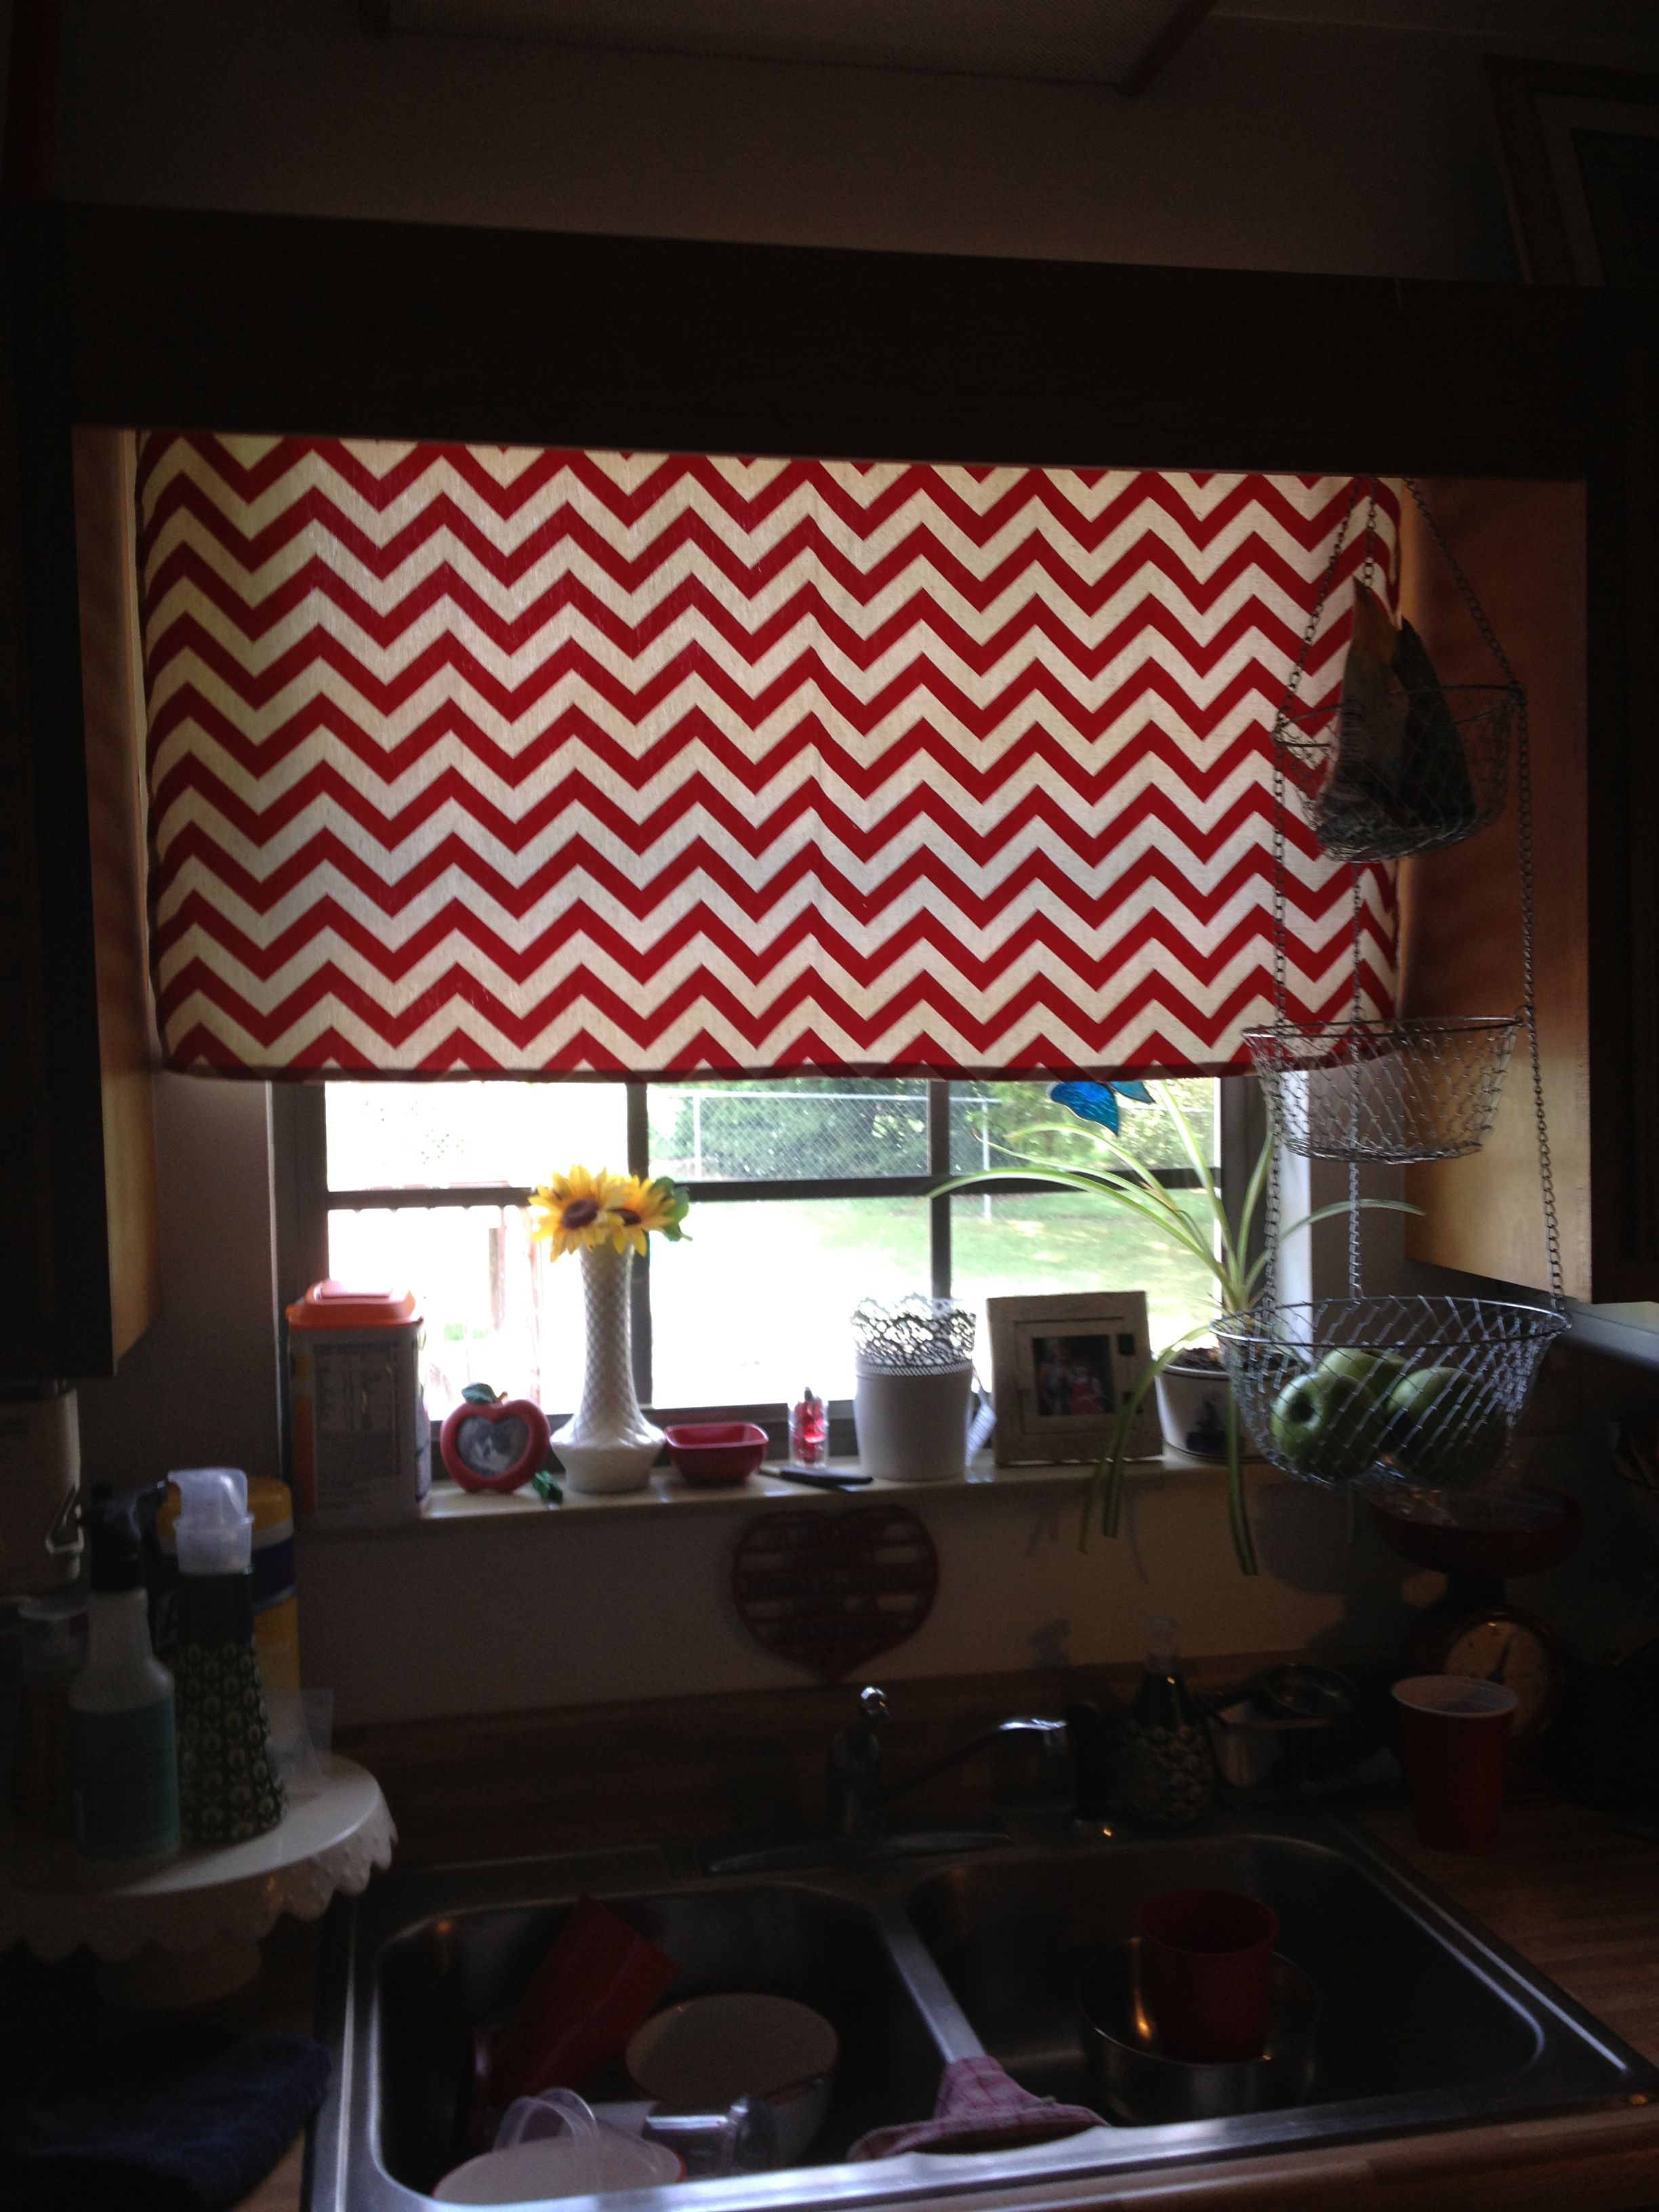 Charmant Kitchen Curtains In Red Chevron :)